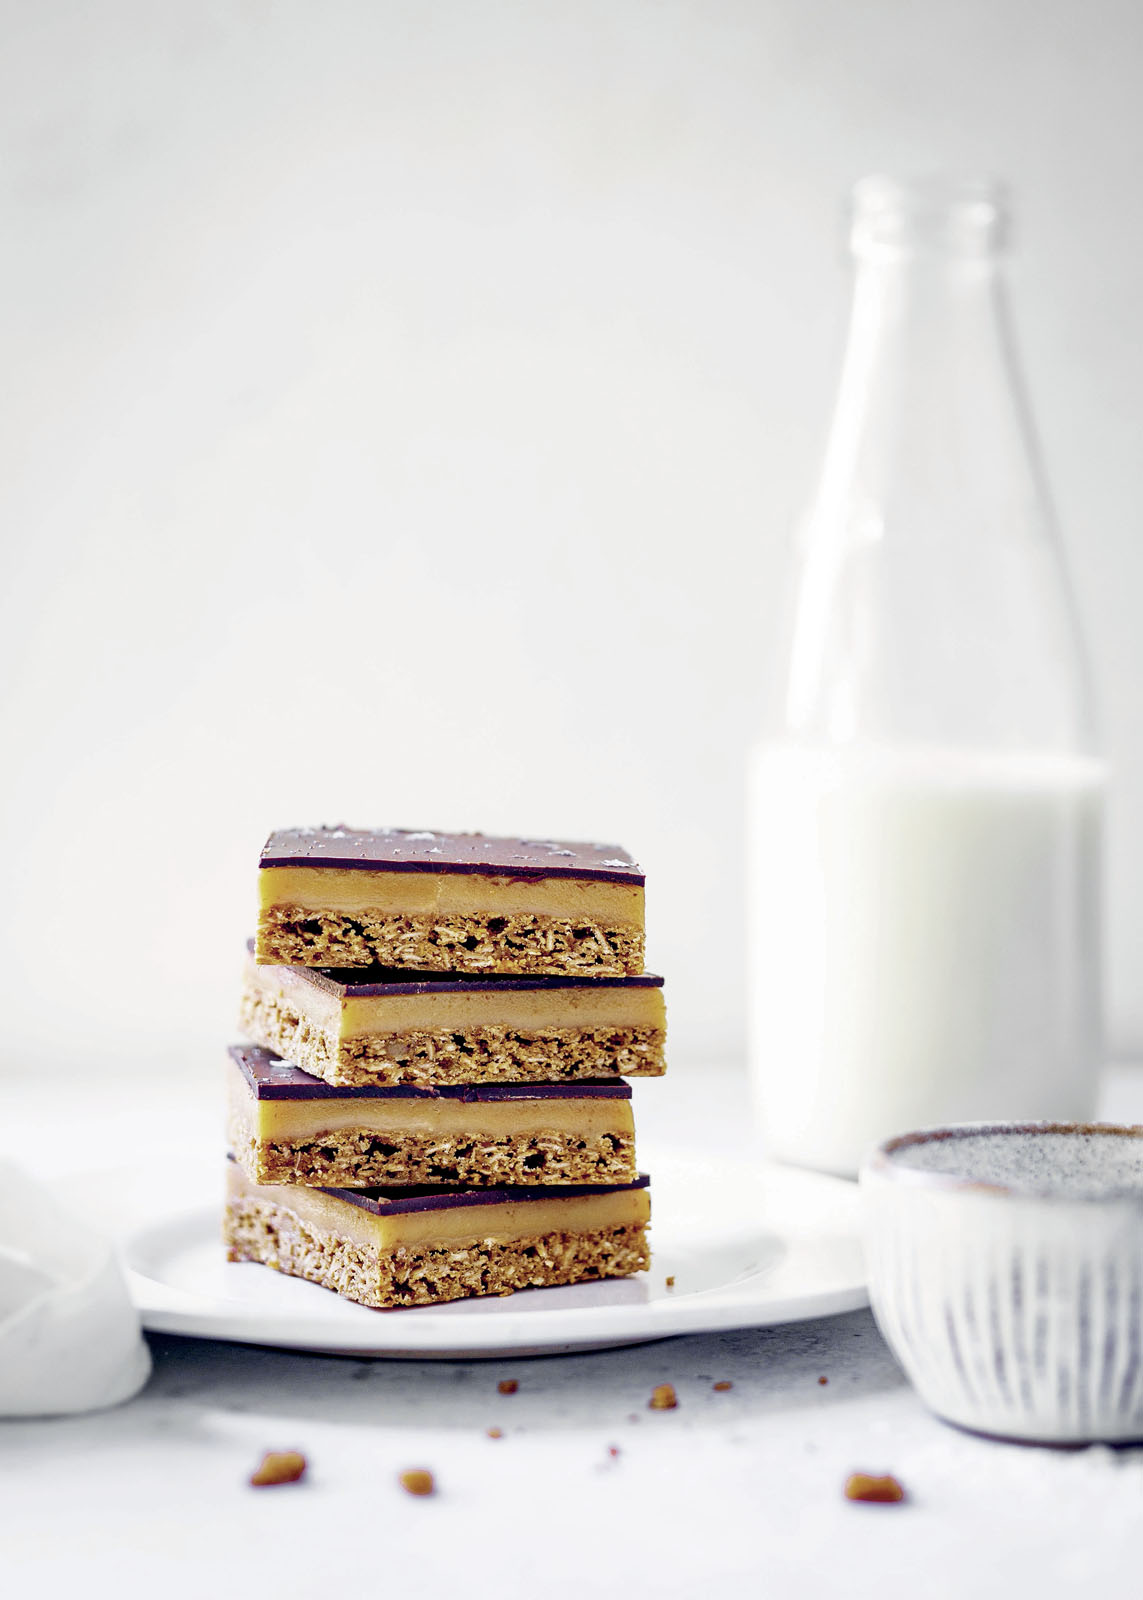 Edd Kimber's Anzac Caramel Chocolate Slices Recipe